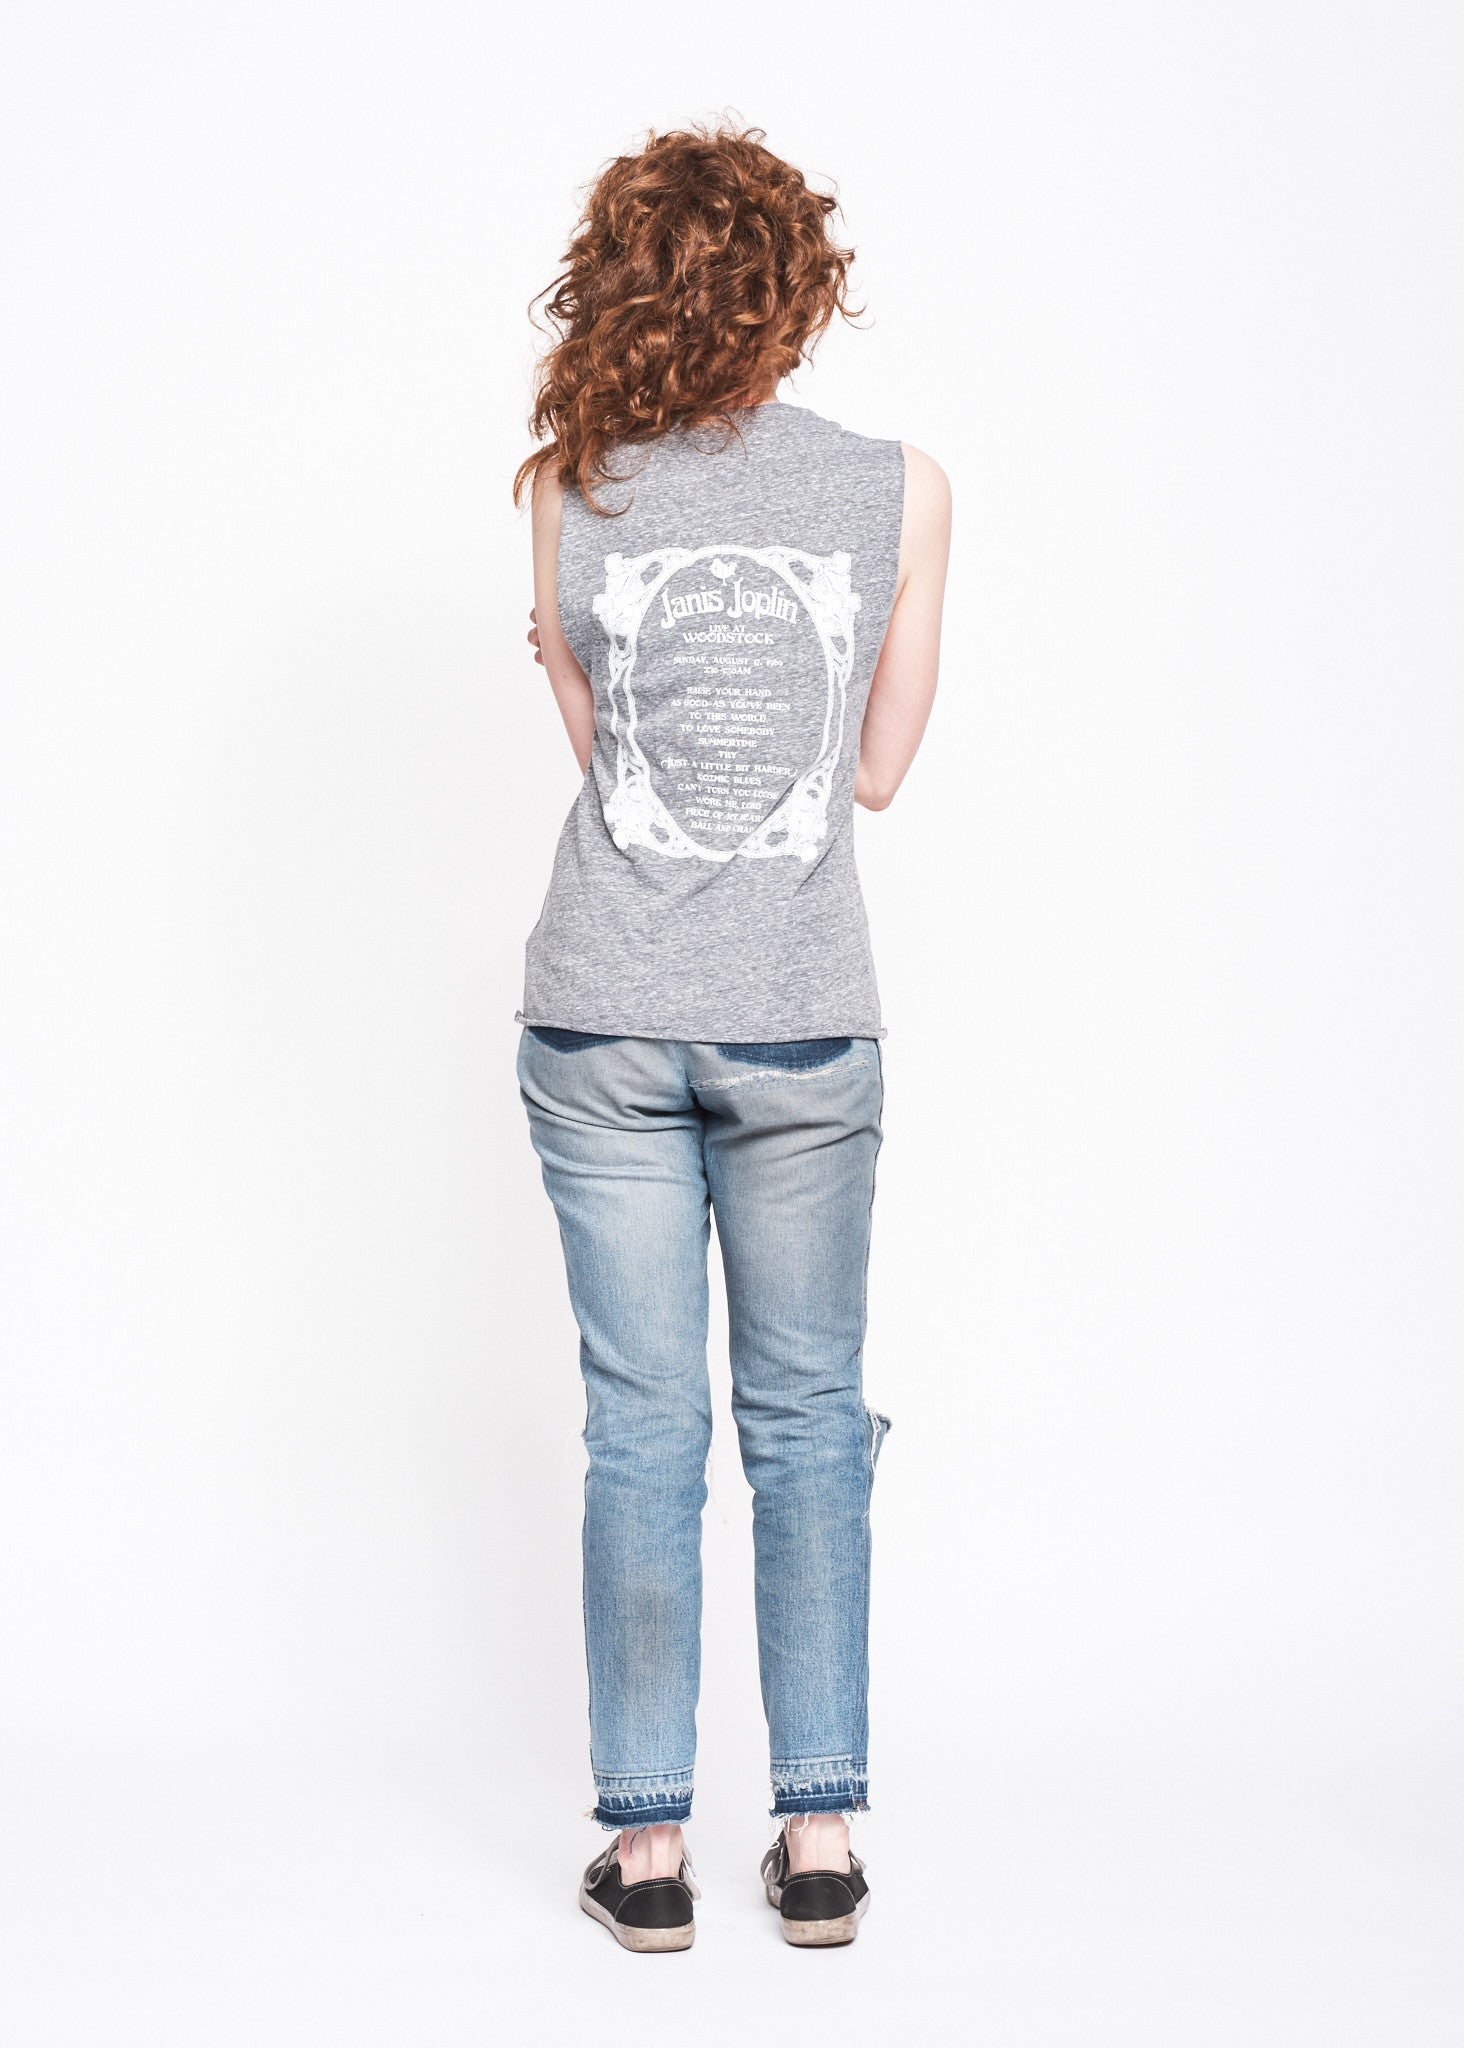 Janis Joplin Live at Woodstock Muscle Tee - Heather Grey